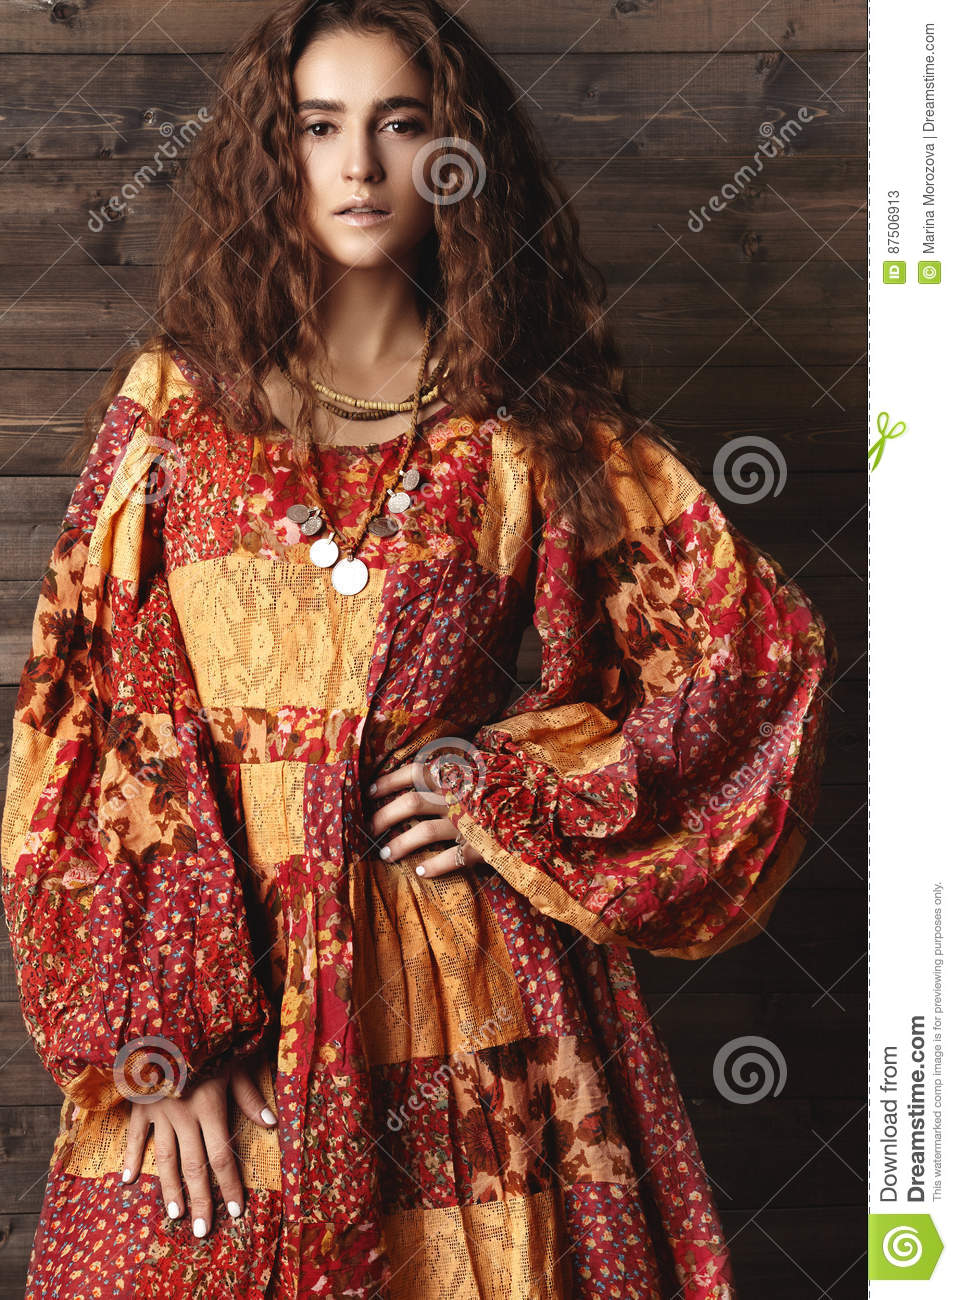 Beautiful young woman with long curly hairstyle, fashion jewelry with brunette hair. Indian style clothes, long dress